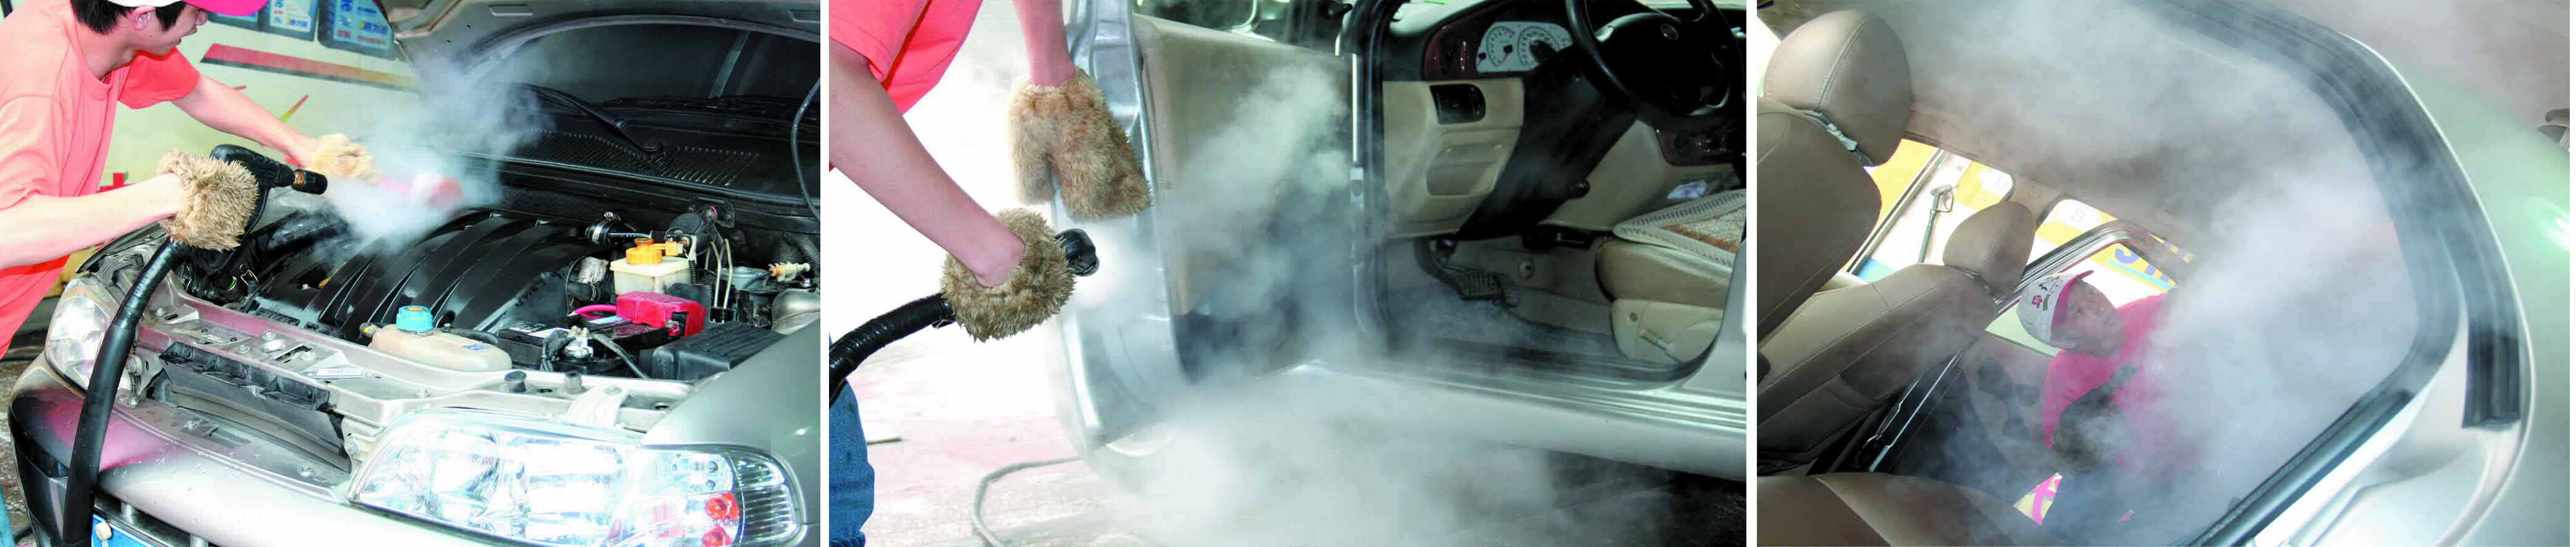 high pressure car washer, steam car washer